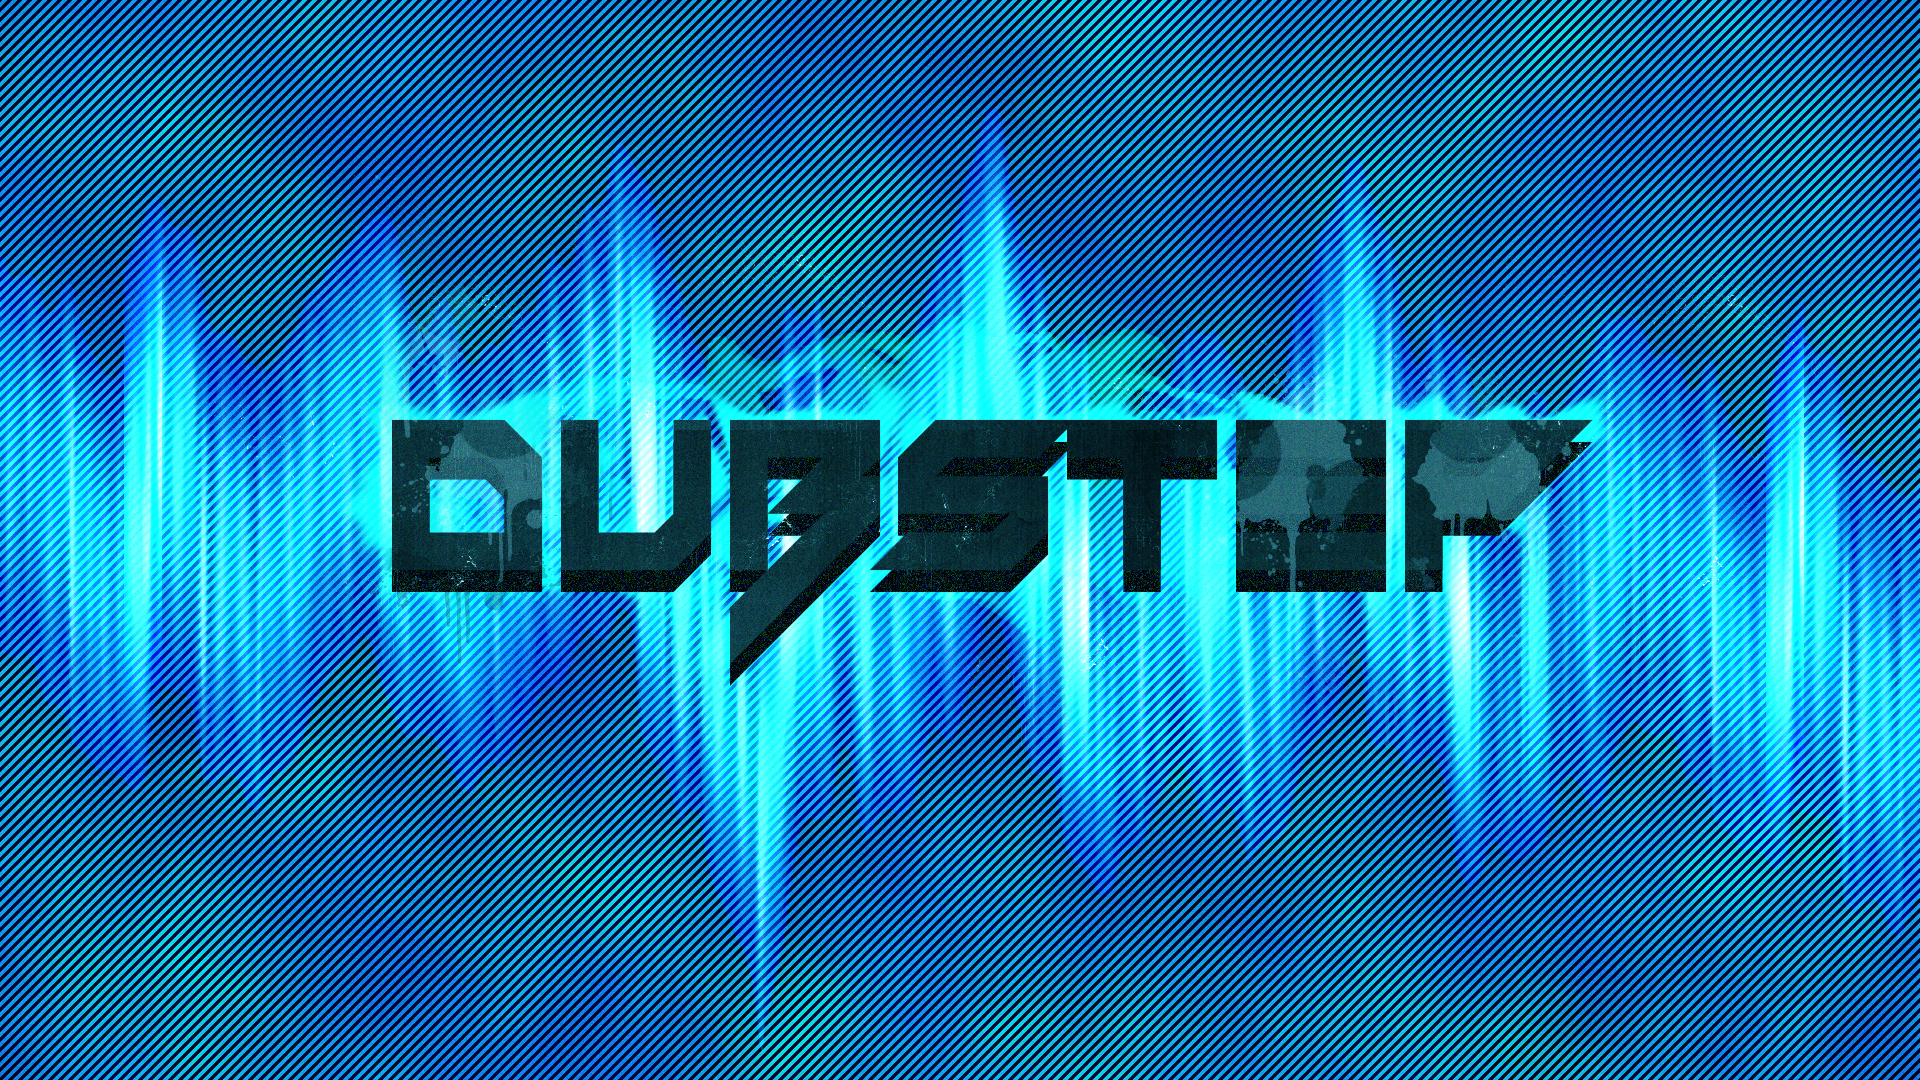 dubstep wallpapers hd 1920x1080 by phantomghost1525 on